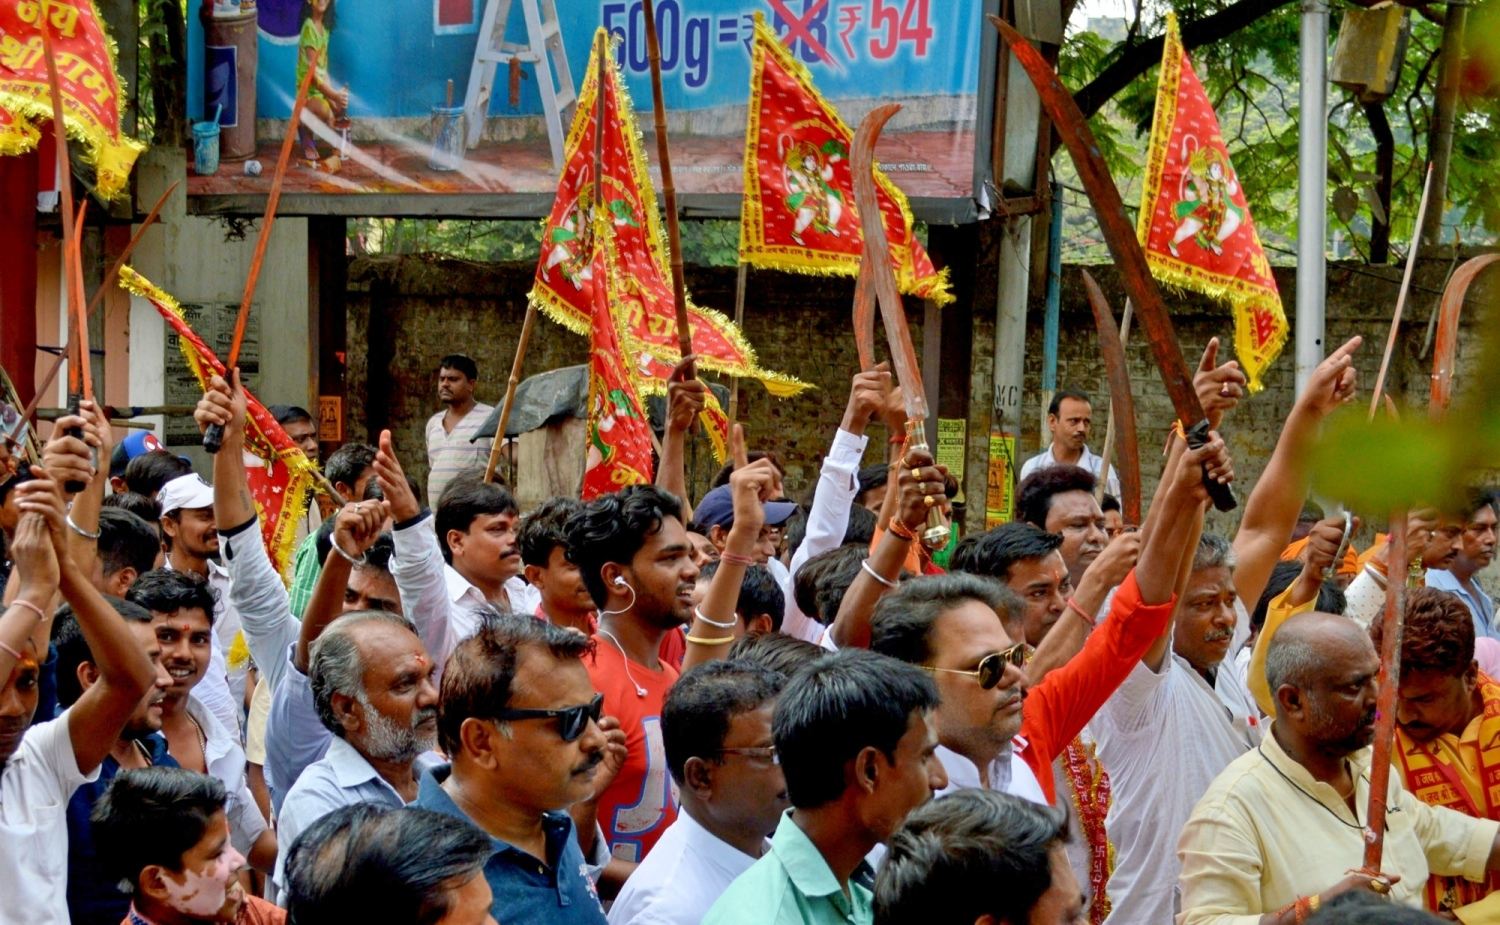 Members of the Kshatriya Samaj wave swords as they participate in a rally on Ram Navami in Howrah, West Bengal, on March 25.  (Photo credit: IANS).